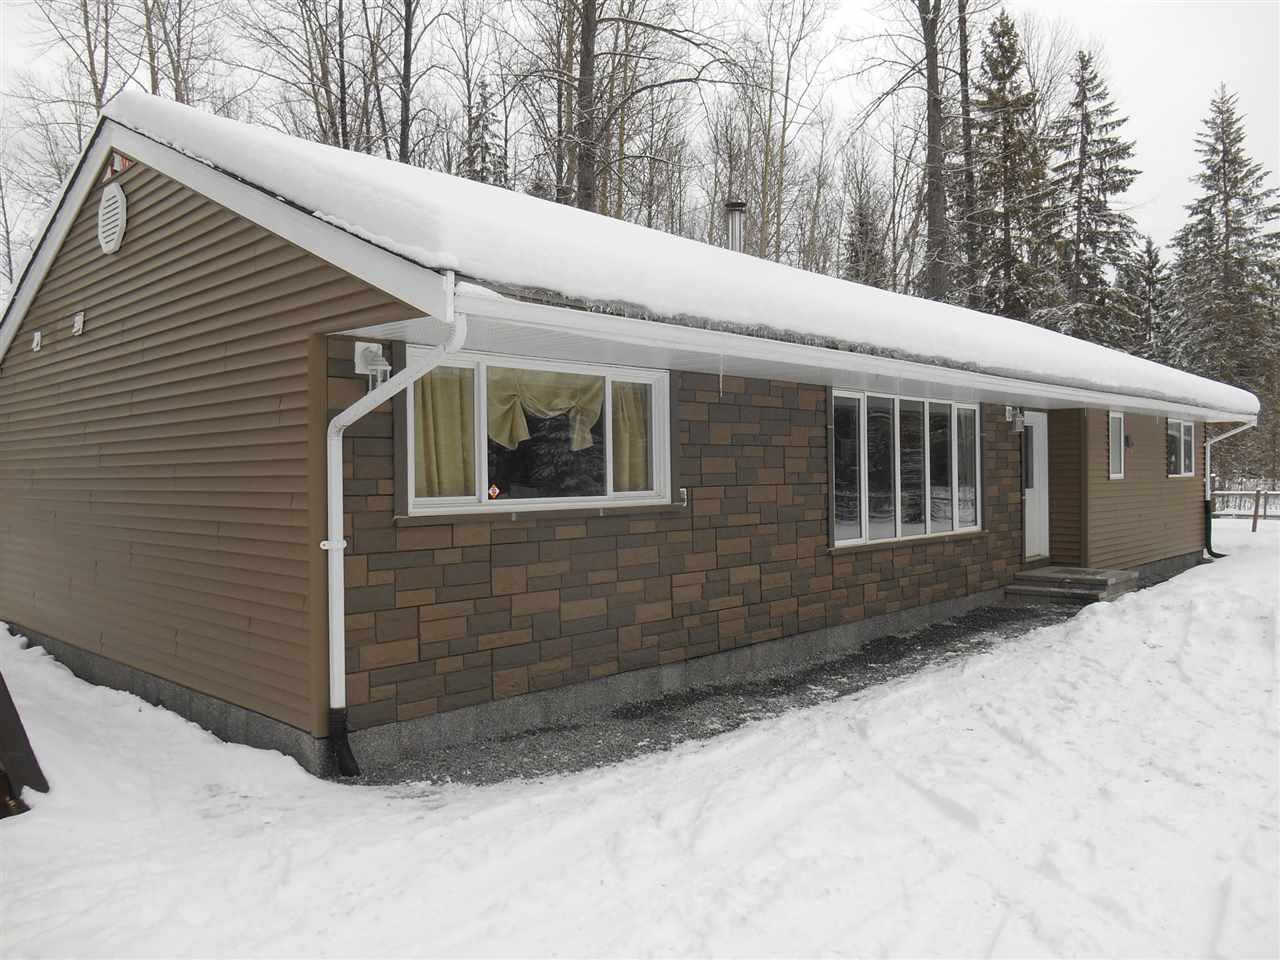 Main Photo: 4700 SALMON VALLEY Road in Prince George: Salmon Valley House for sale (PG Rural North (Zone 76))  : MLS®# R2032966